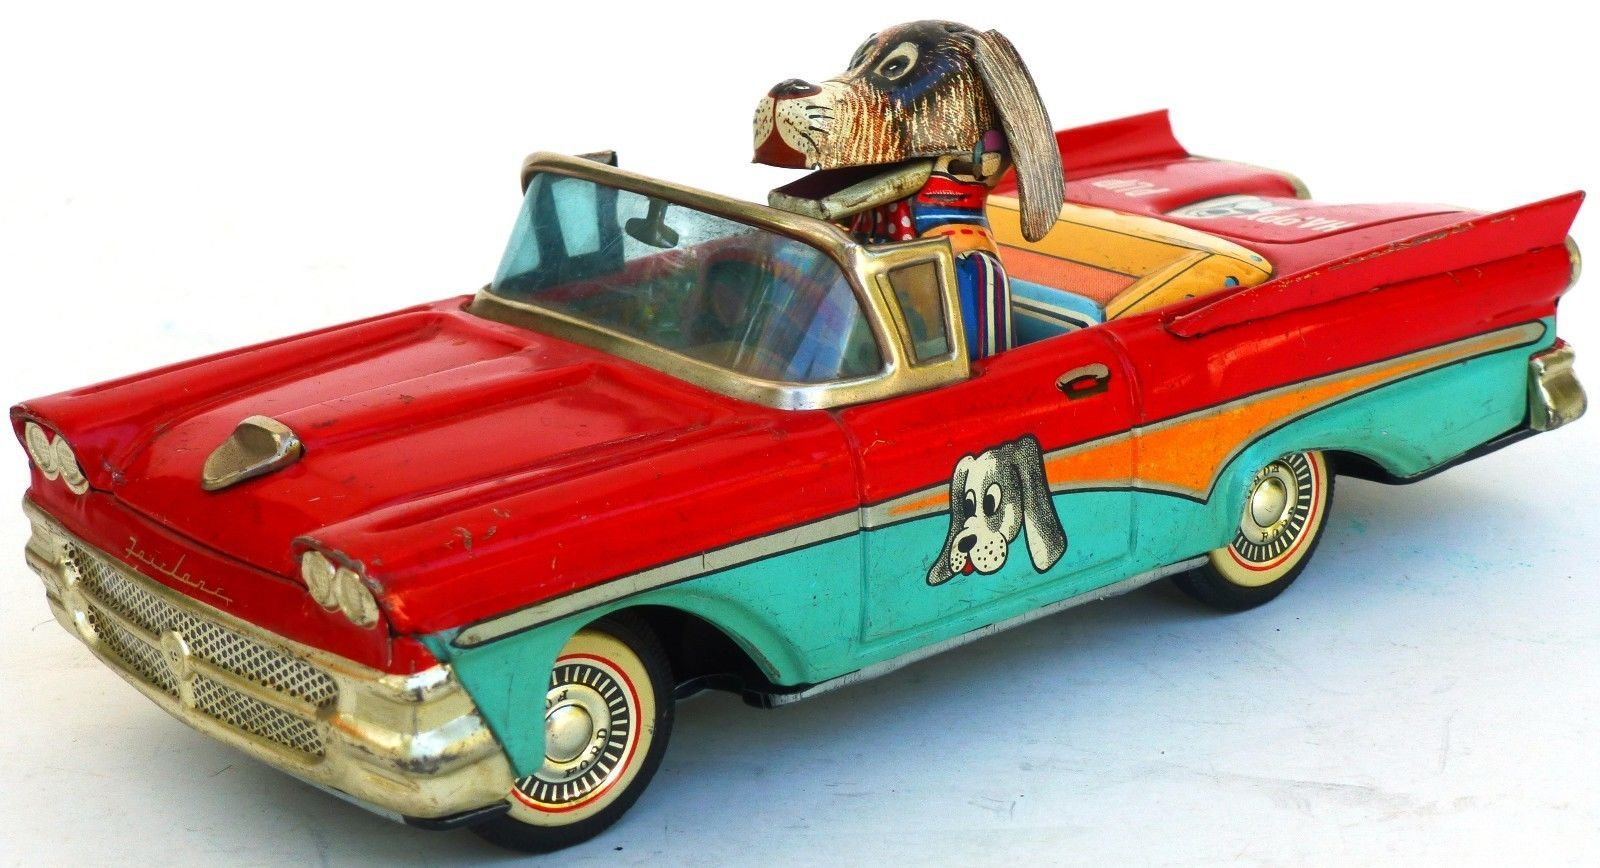 Alps Happy Pup Friction Car Tin Toy from 50s ebay | Vintage Toys ...